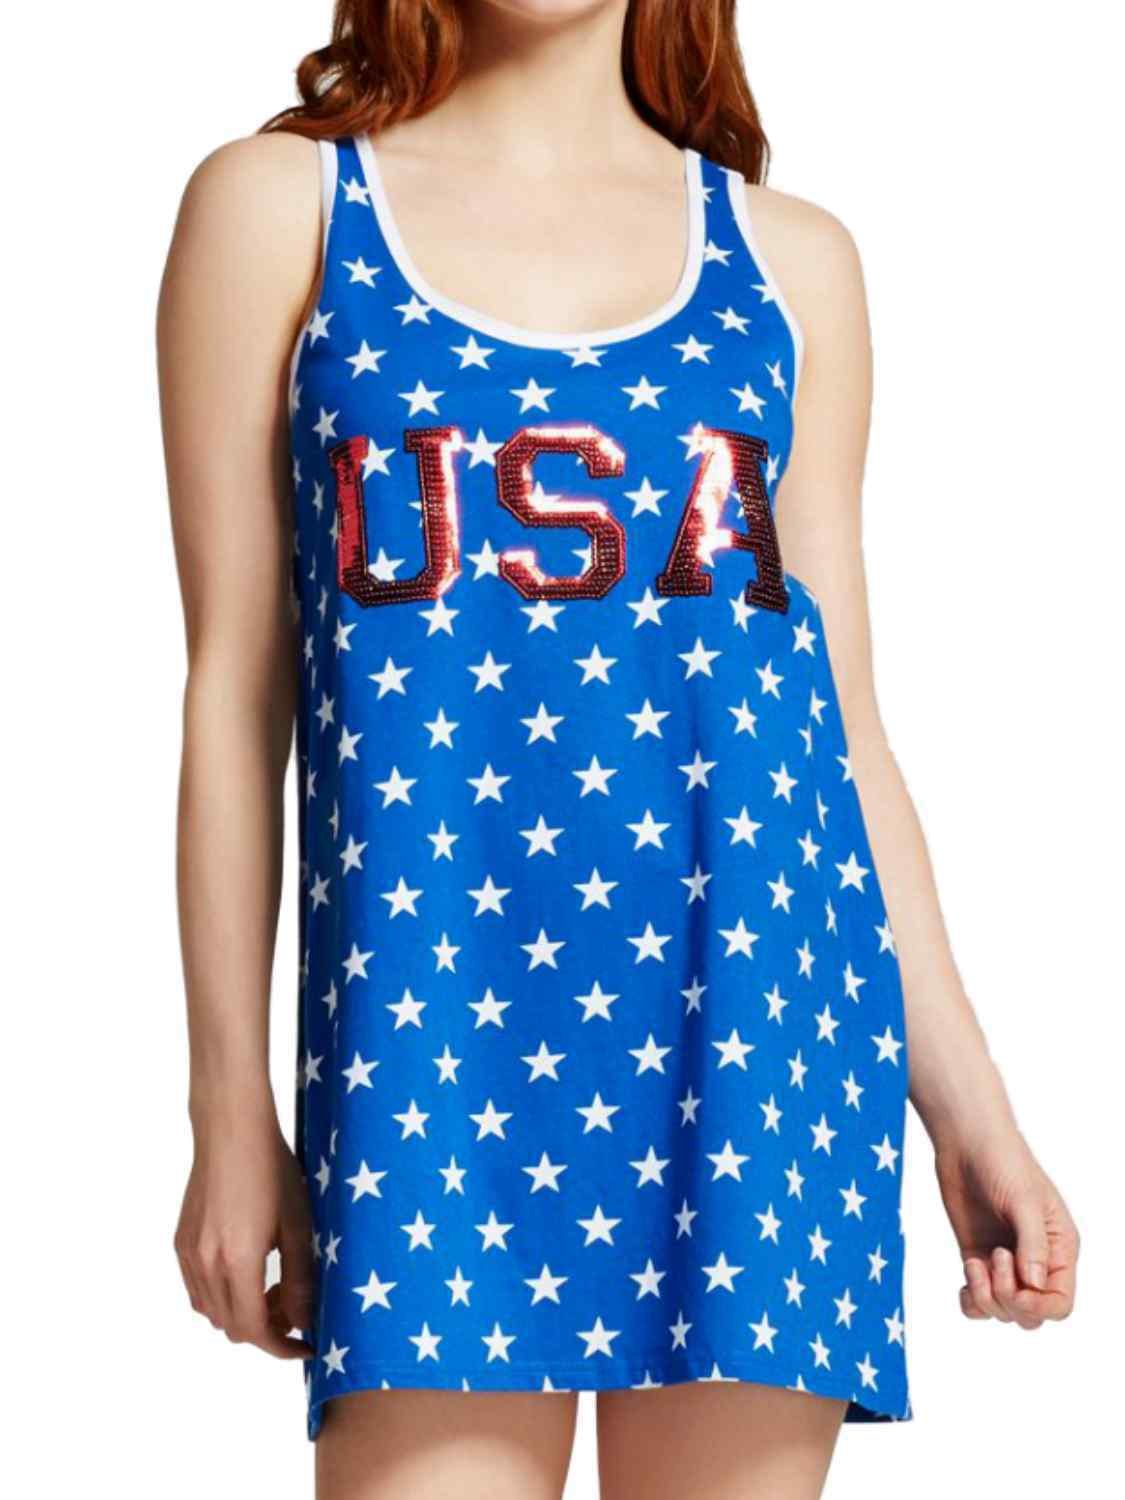 Snooze Button Womens USA Patriotic Star Sleep Shirt Sleeveless Night Gown XL Clothing, Shoes & Accessories